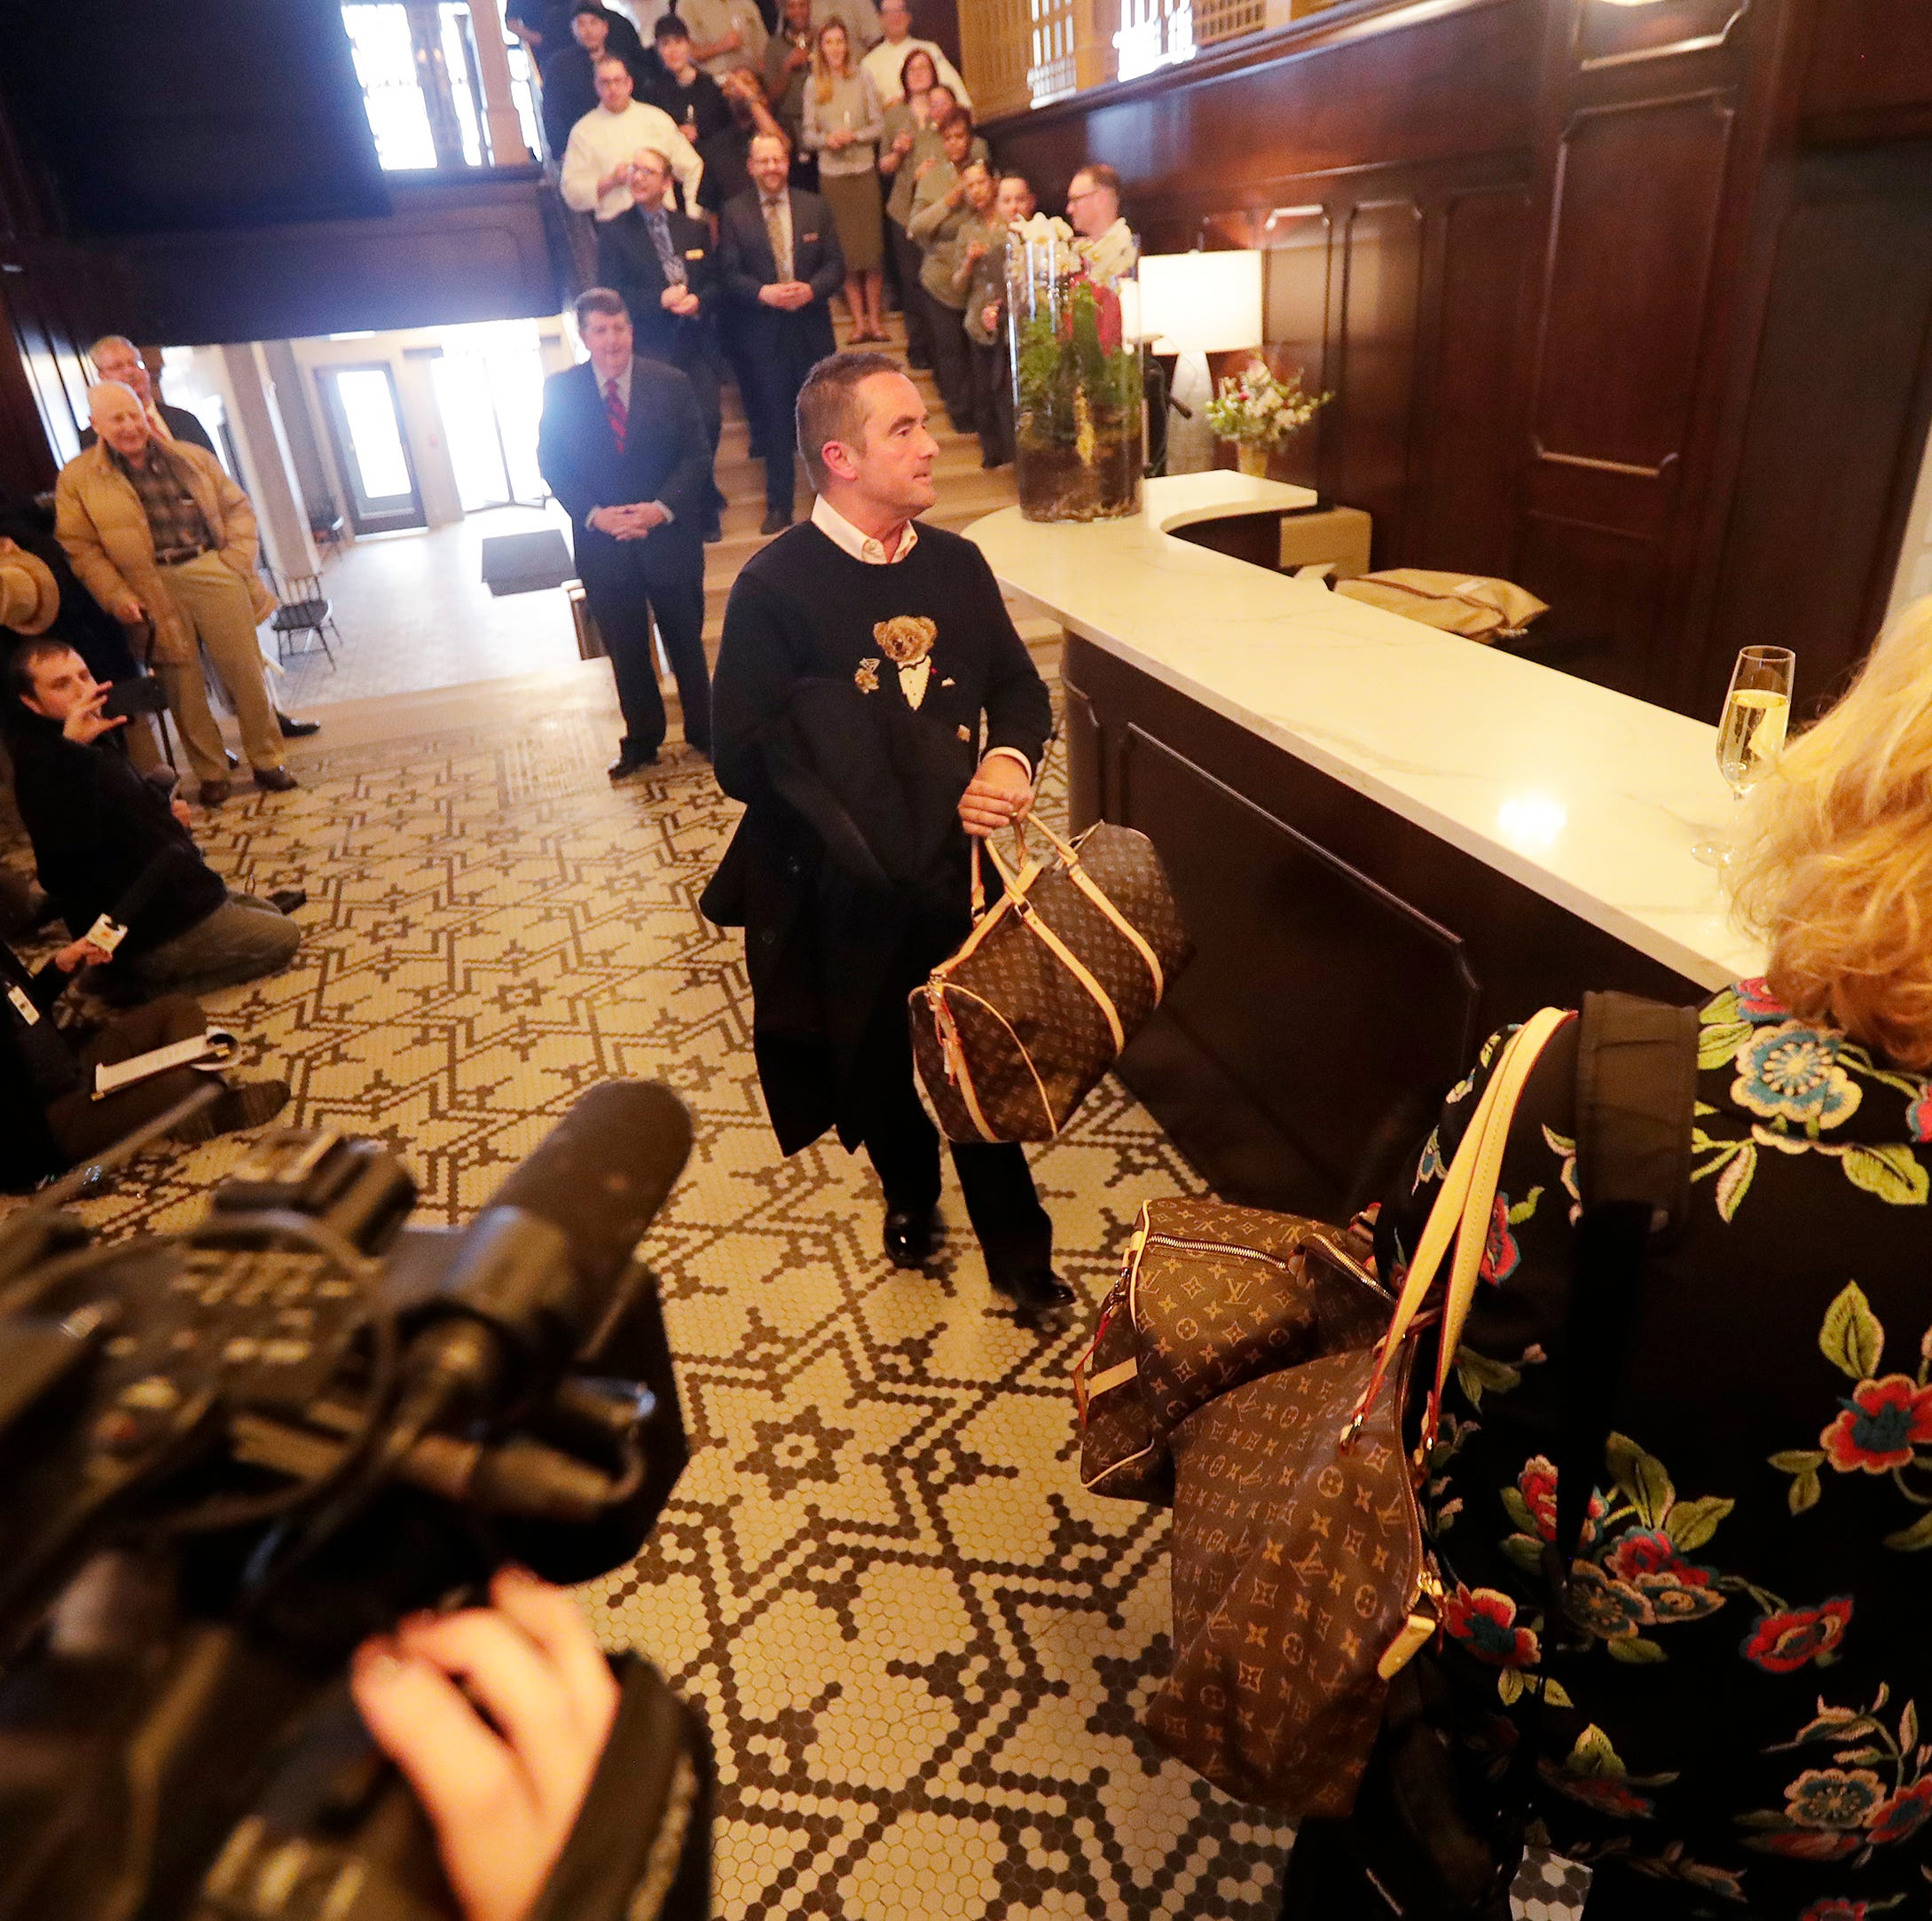 Hotel Northland: Green Bay luxury hotel's restoration impresses first guests